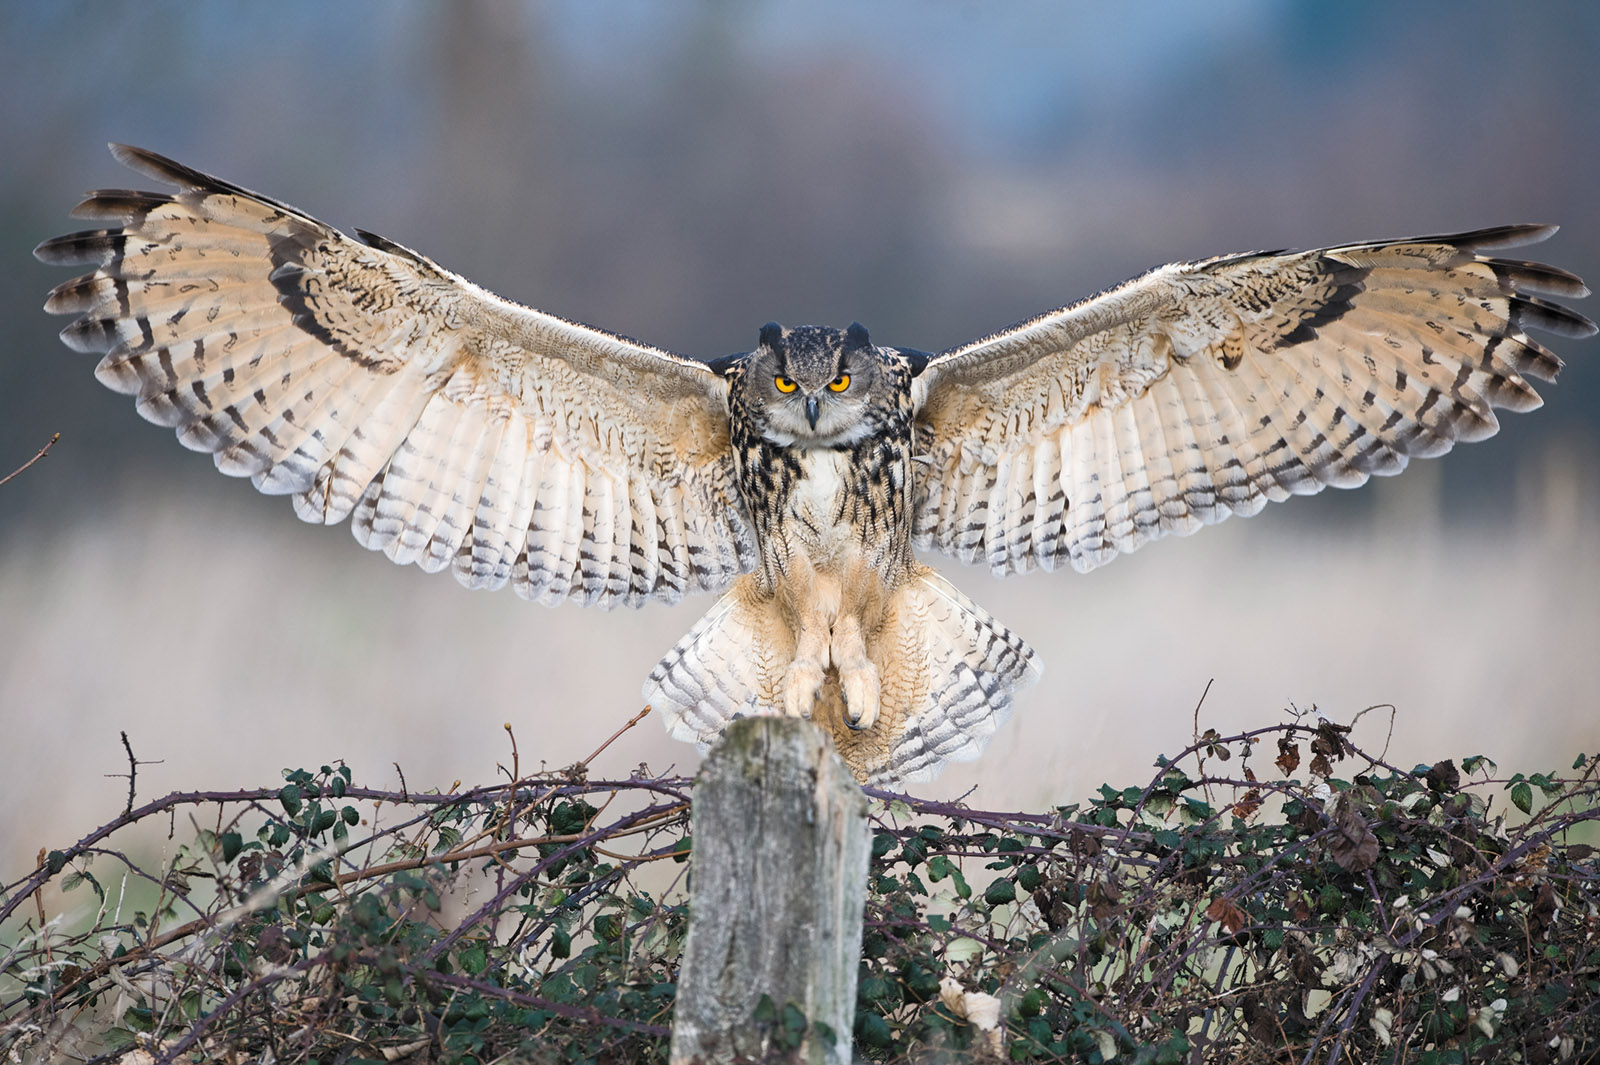 A Eurasian eagle owl, one of the largest owls in the world, whose wings may span more than six feet; from Mike Unwin and David Tipling's The Enigma of the Owl